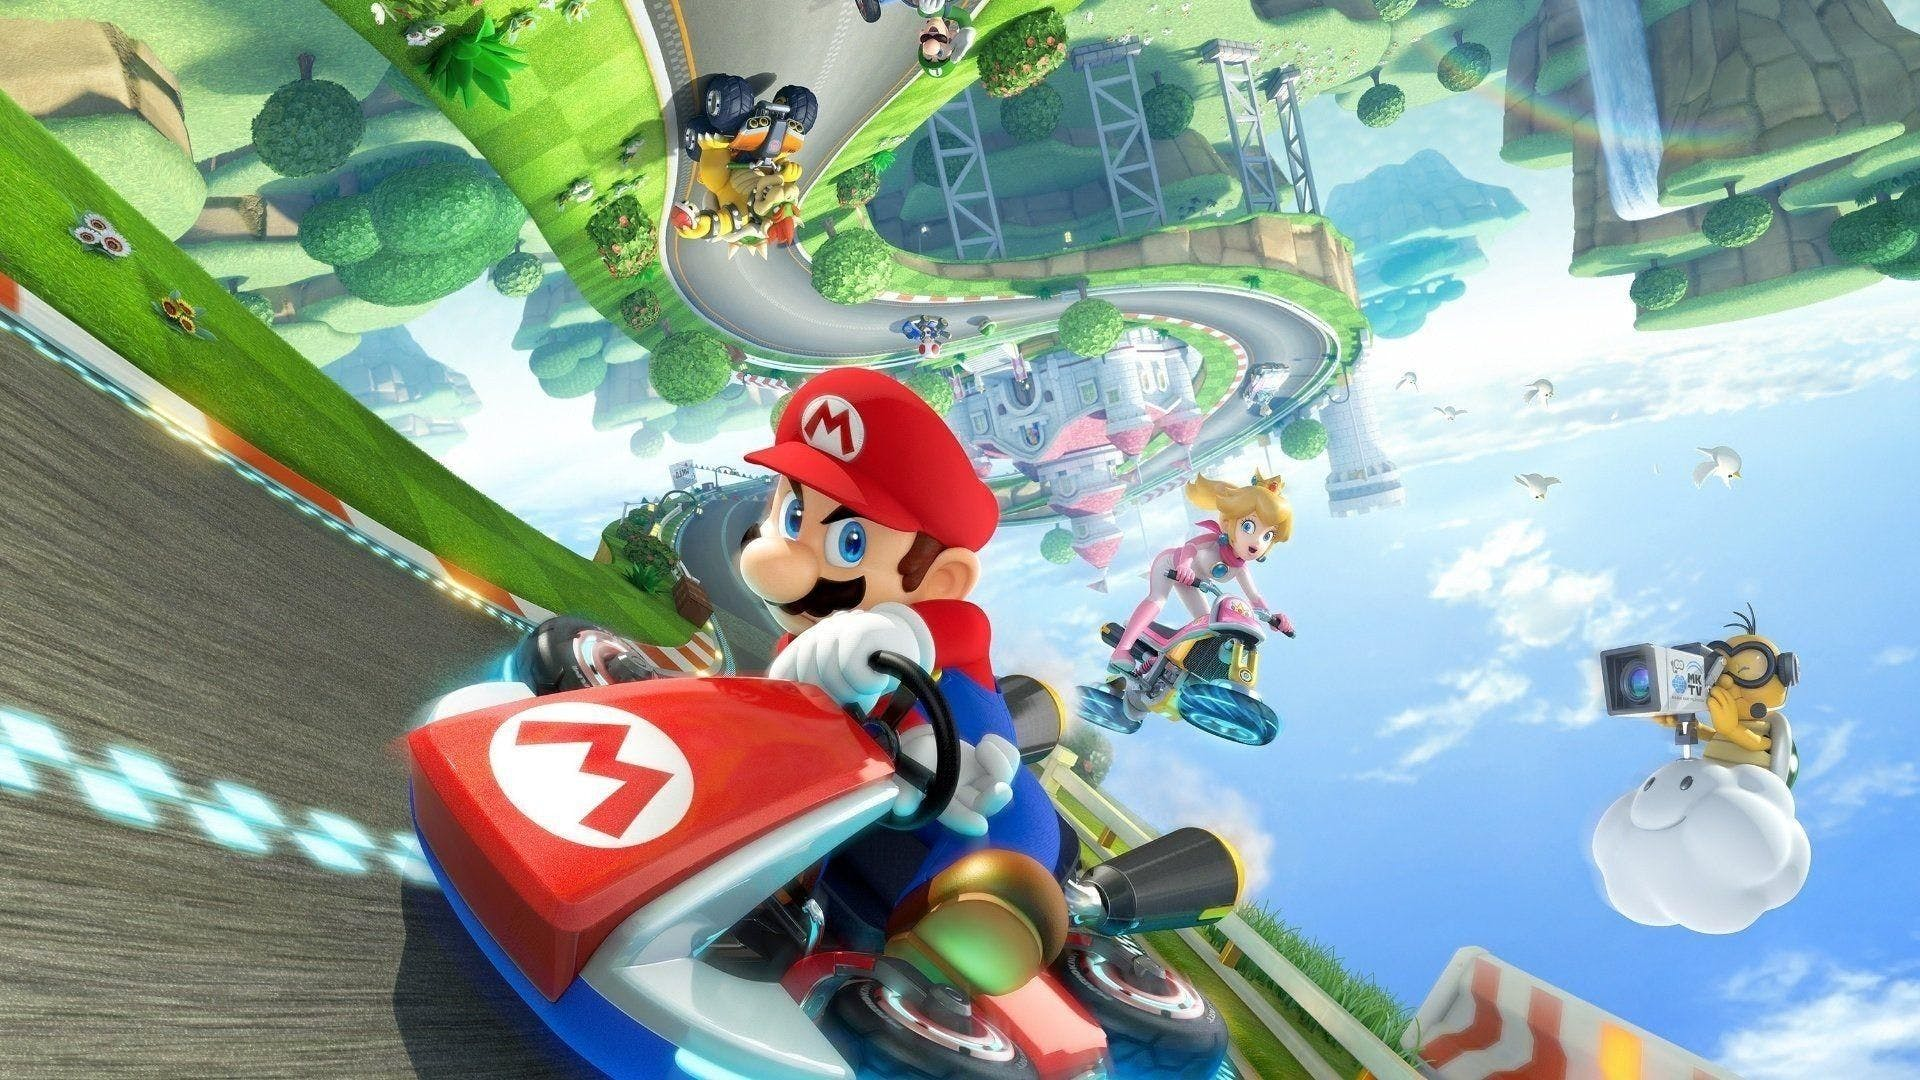 Image of characters from the game Mario Kart